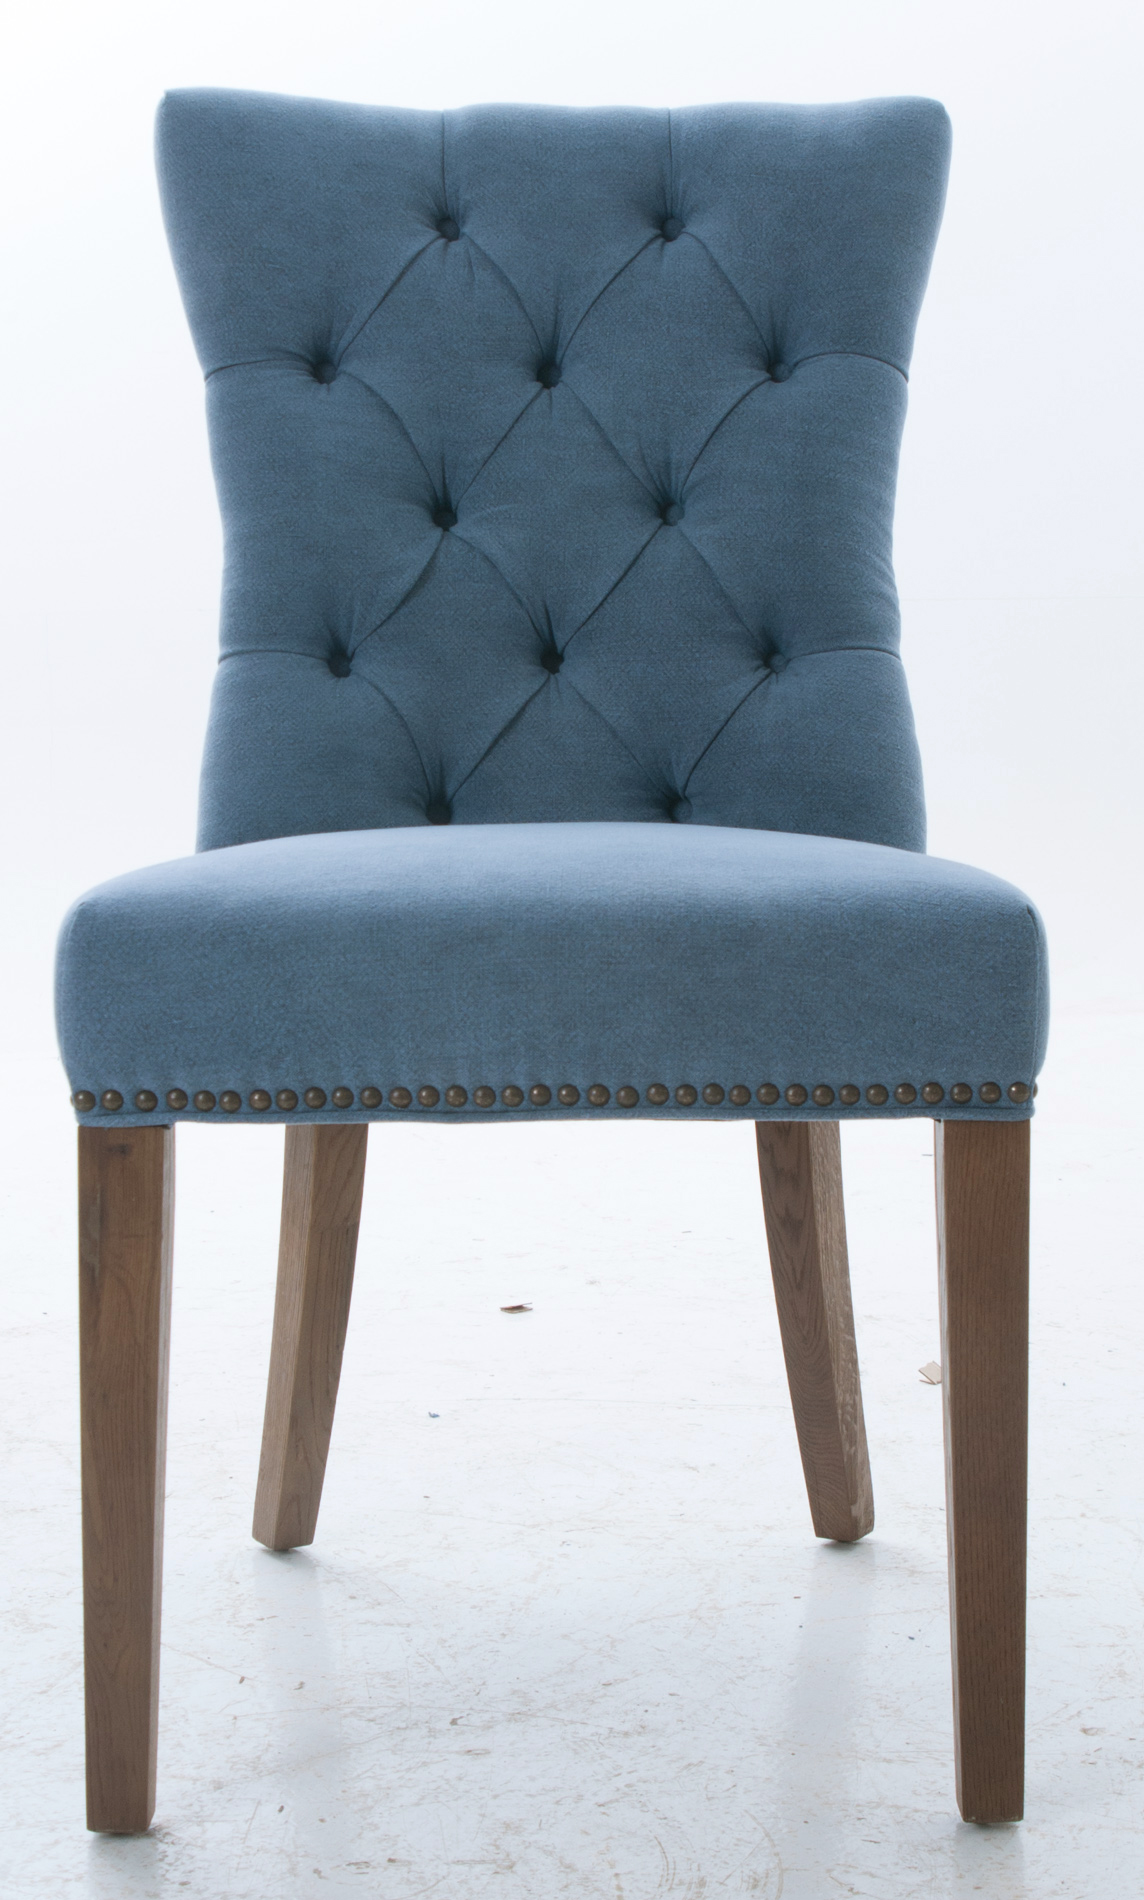 title | Dining room chairs